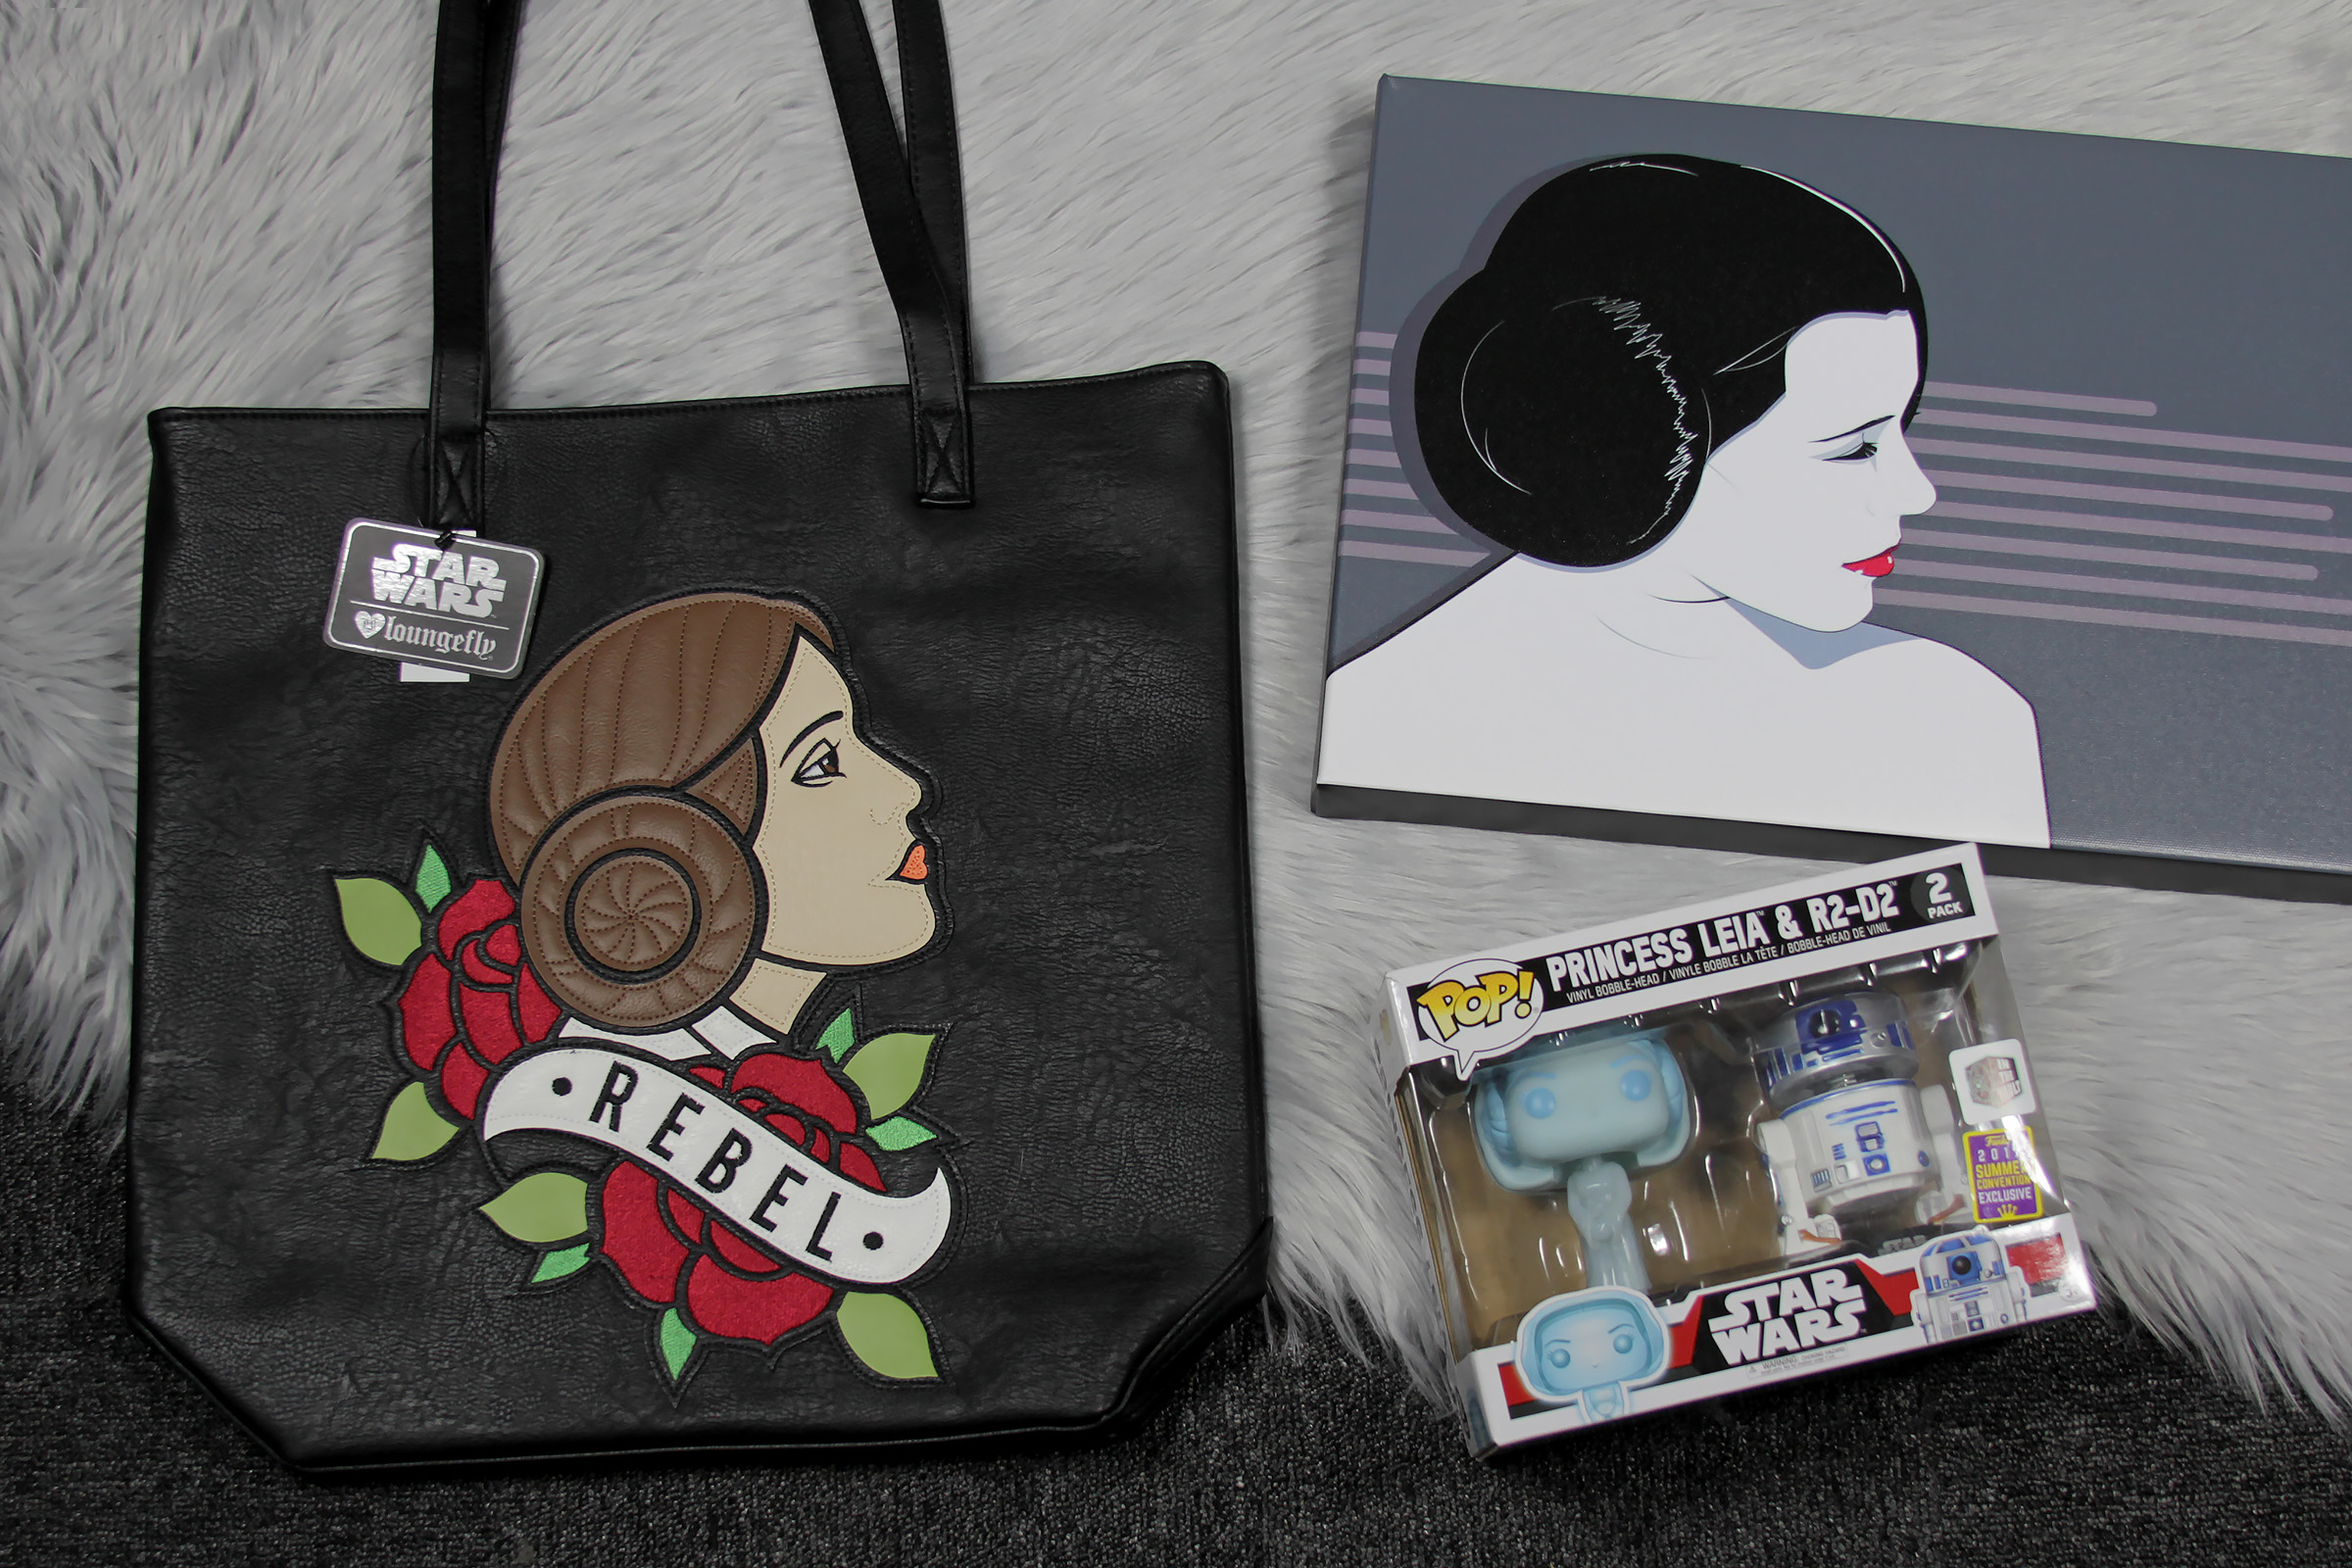 Star Wars Princess Leia Shopping Haul from Armageddon Expo Auckland 2018